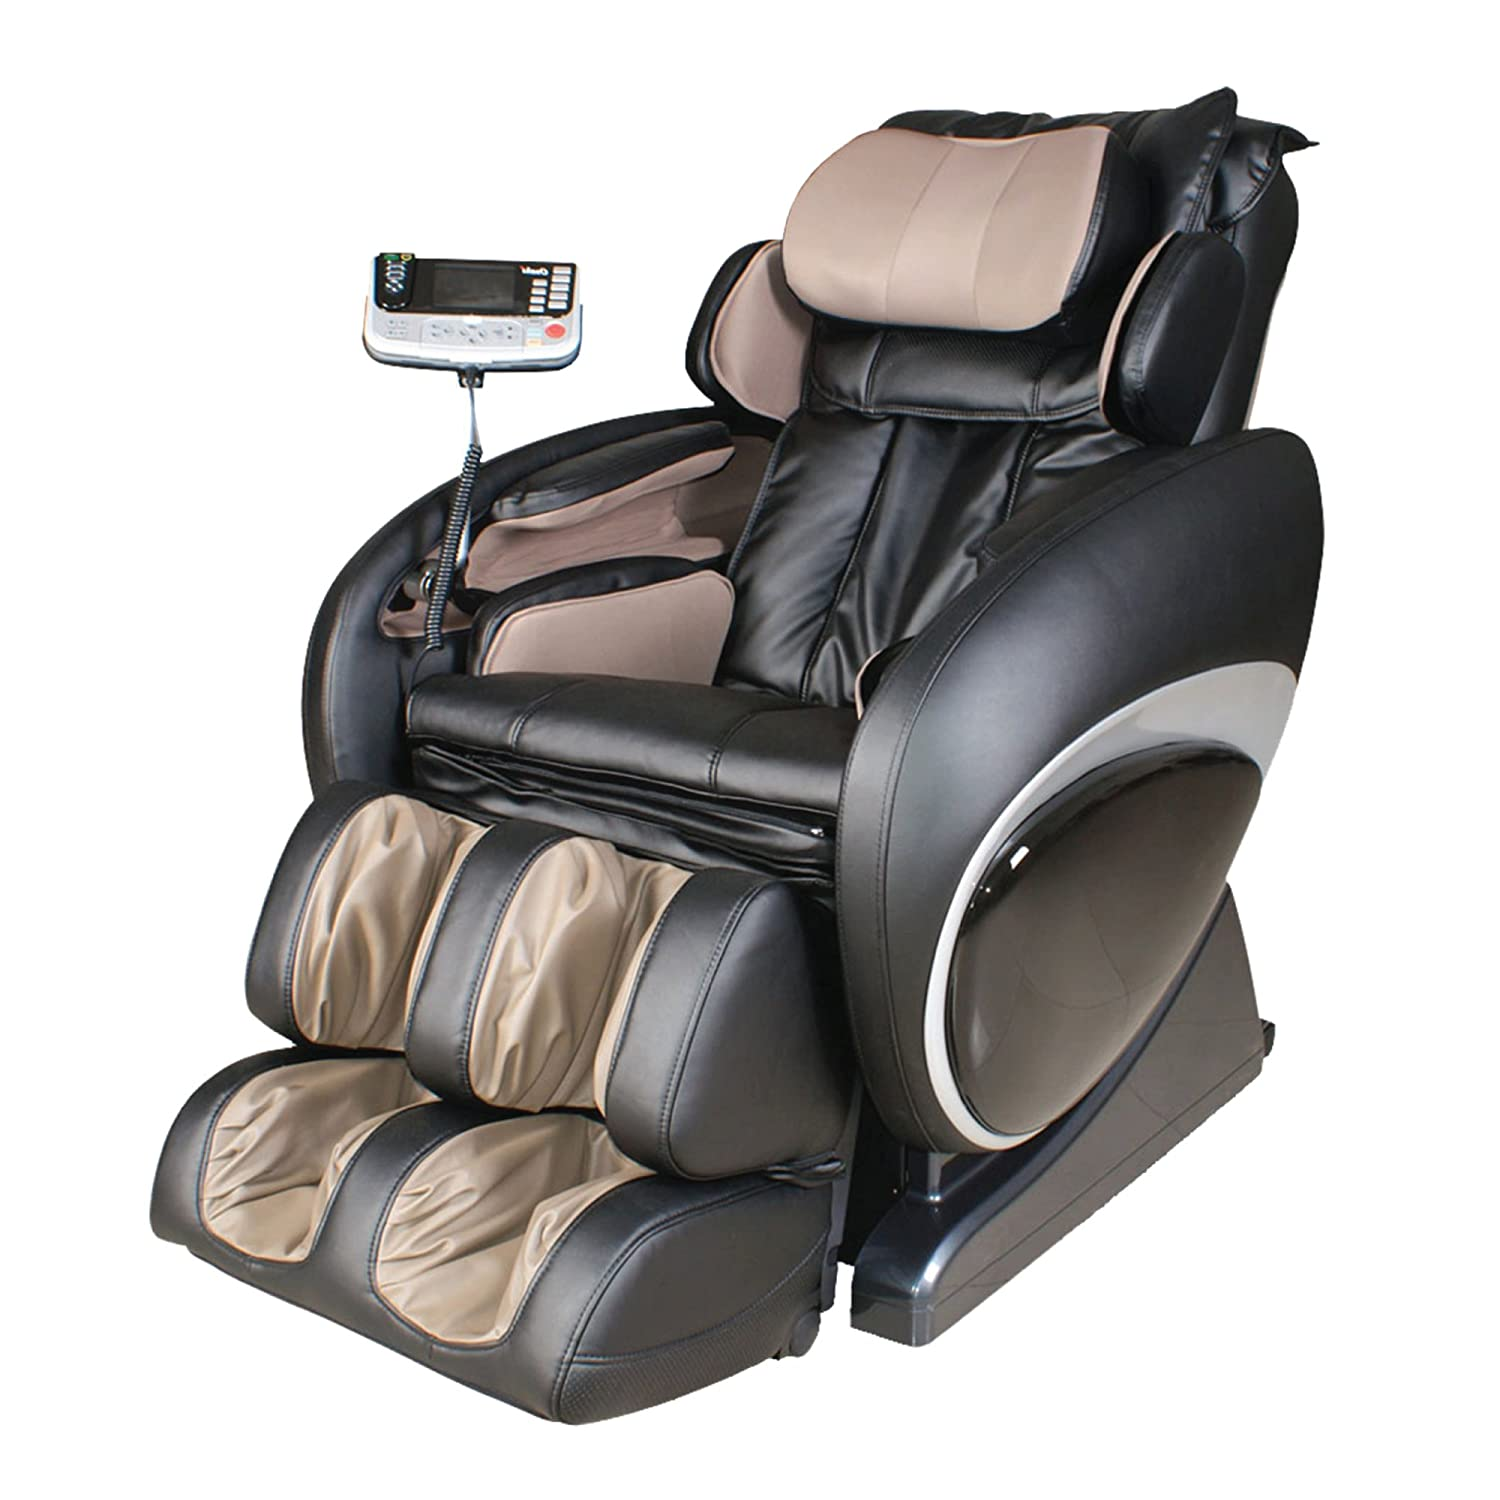 osaki premium vip chairs os chair massage jp black products japan